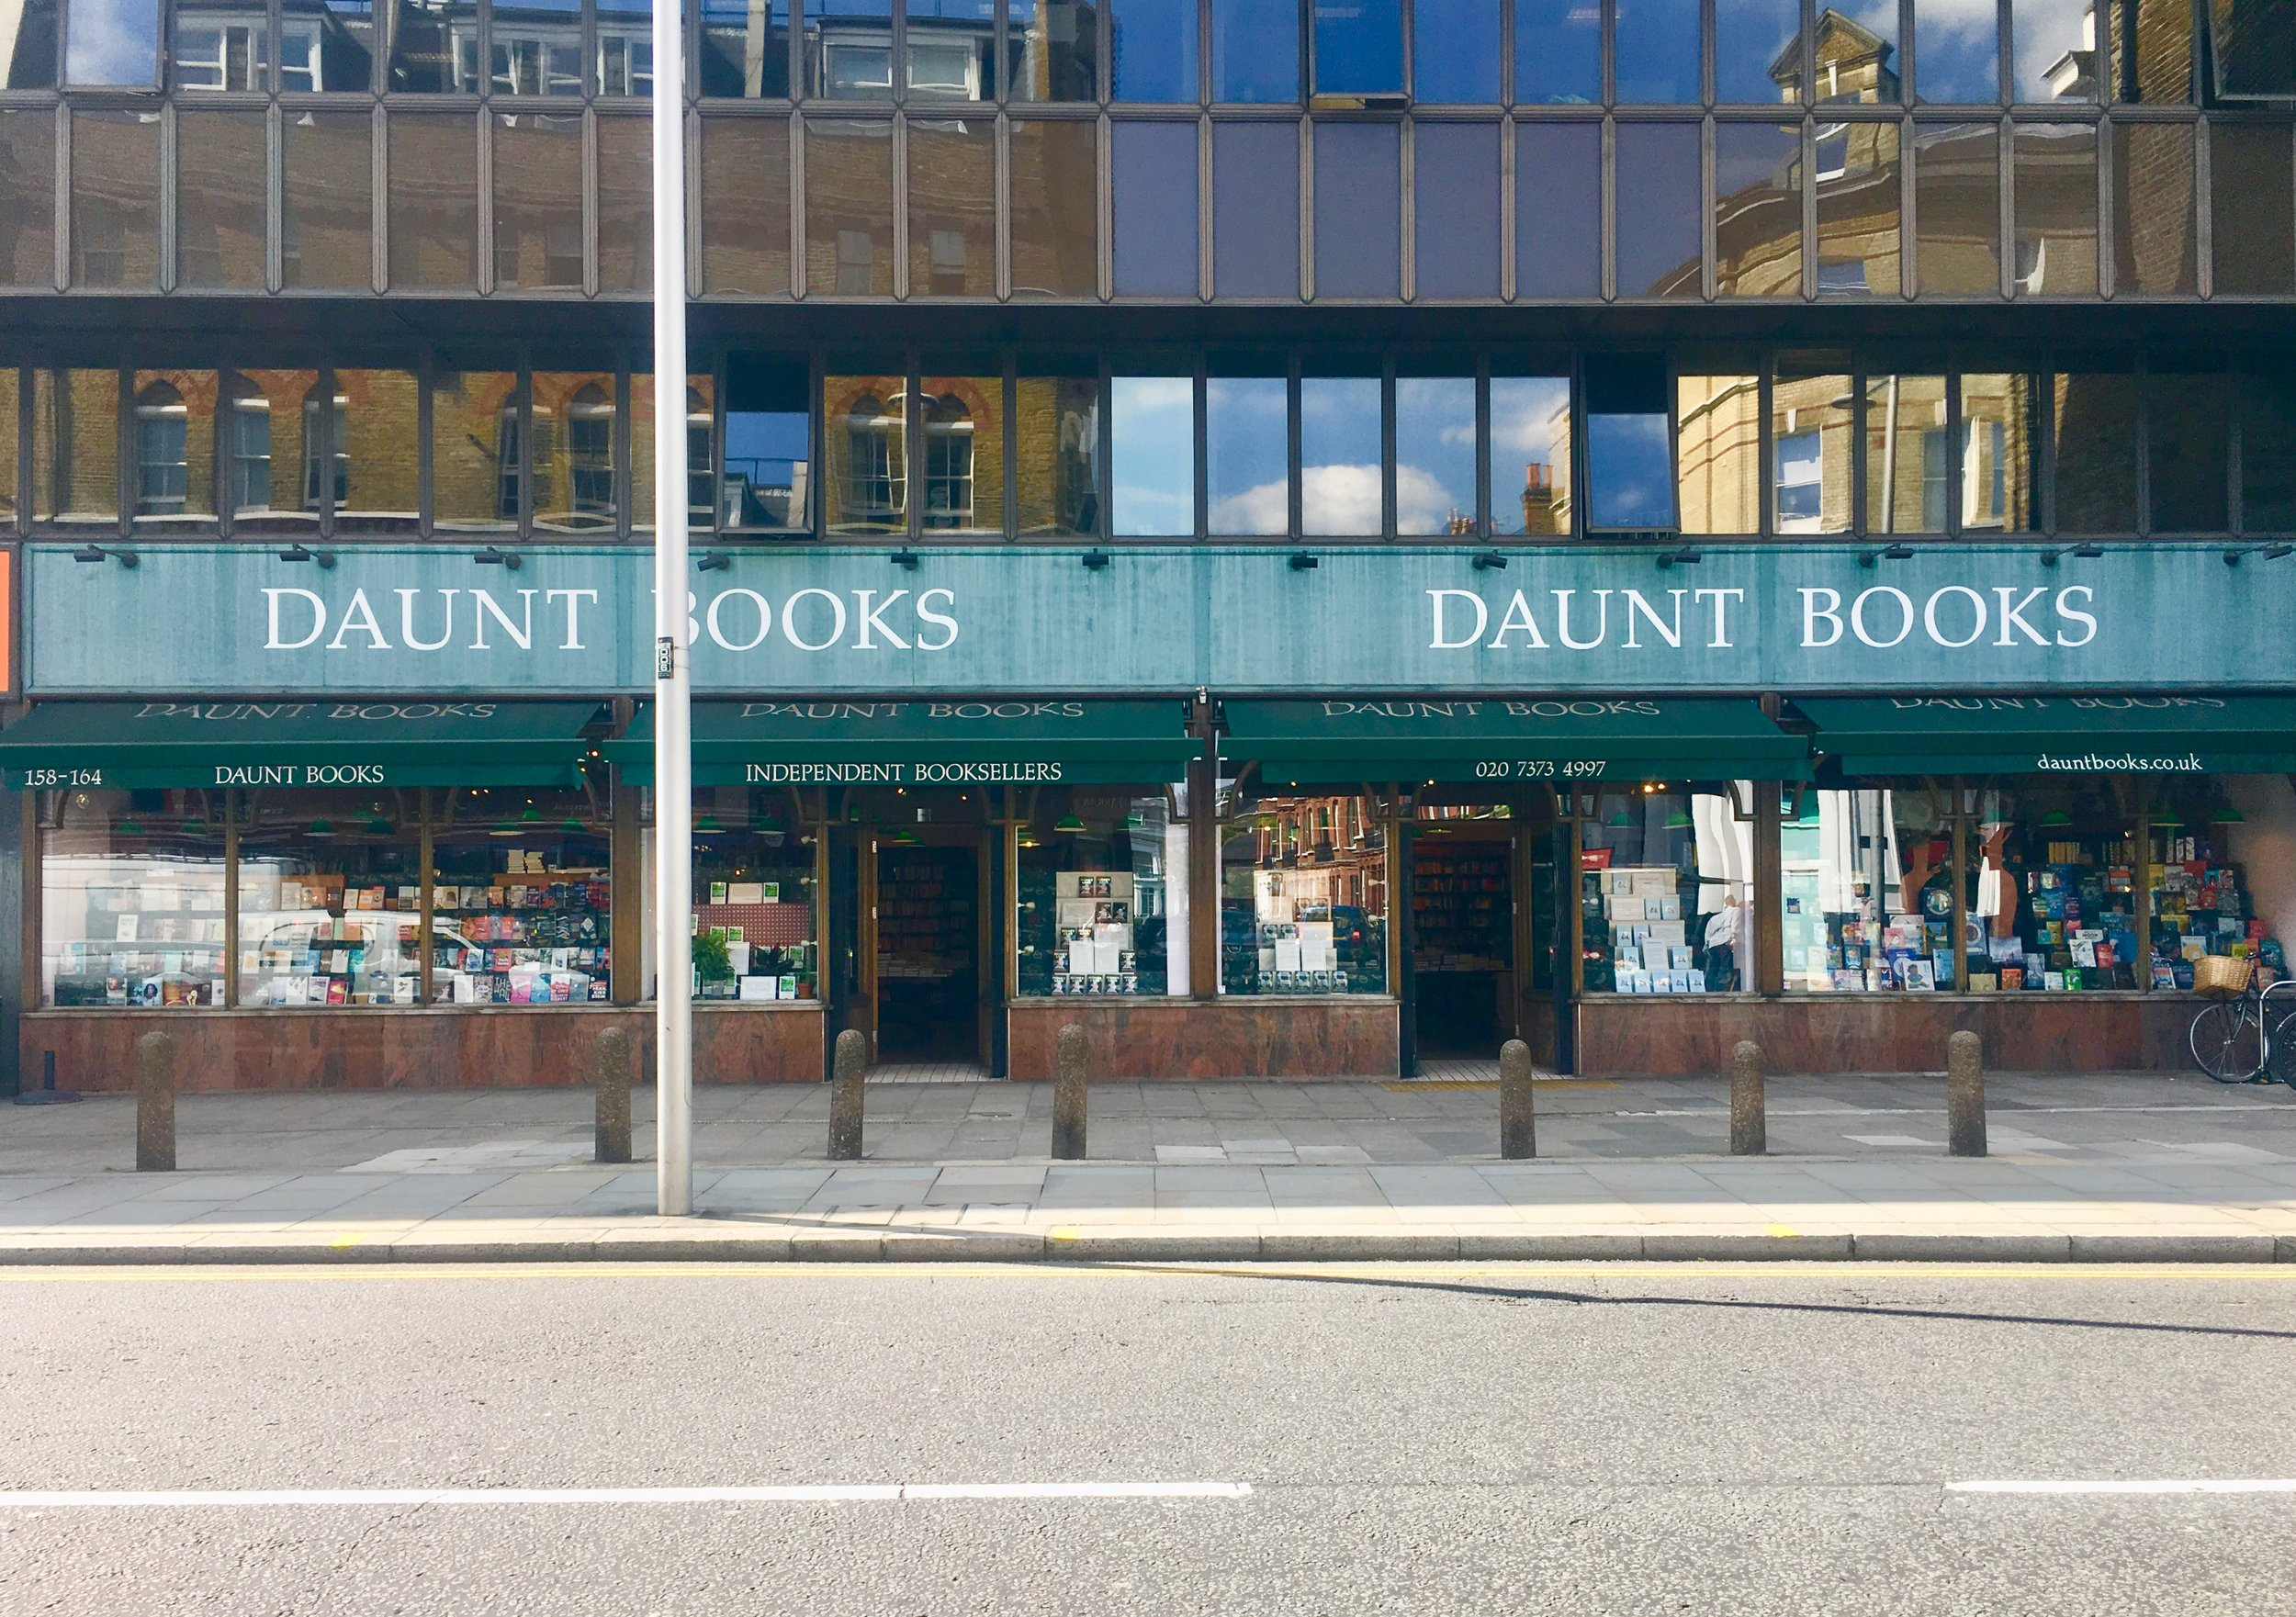 Daunt Books  is an popular independent book store chain in London founded in 1990 and located in various local neighborhoods. Pictured is the Chelsea location. 158-164 Fulham Rd, London, Chelsea, UK.